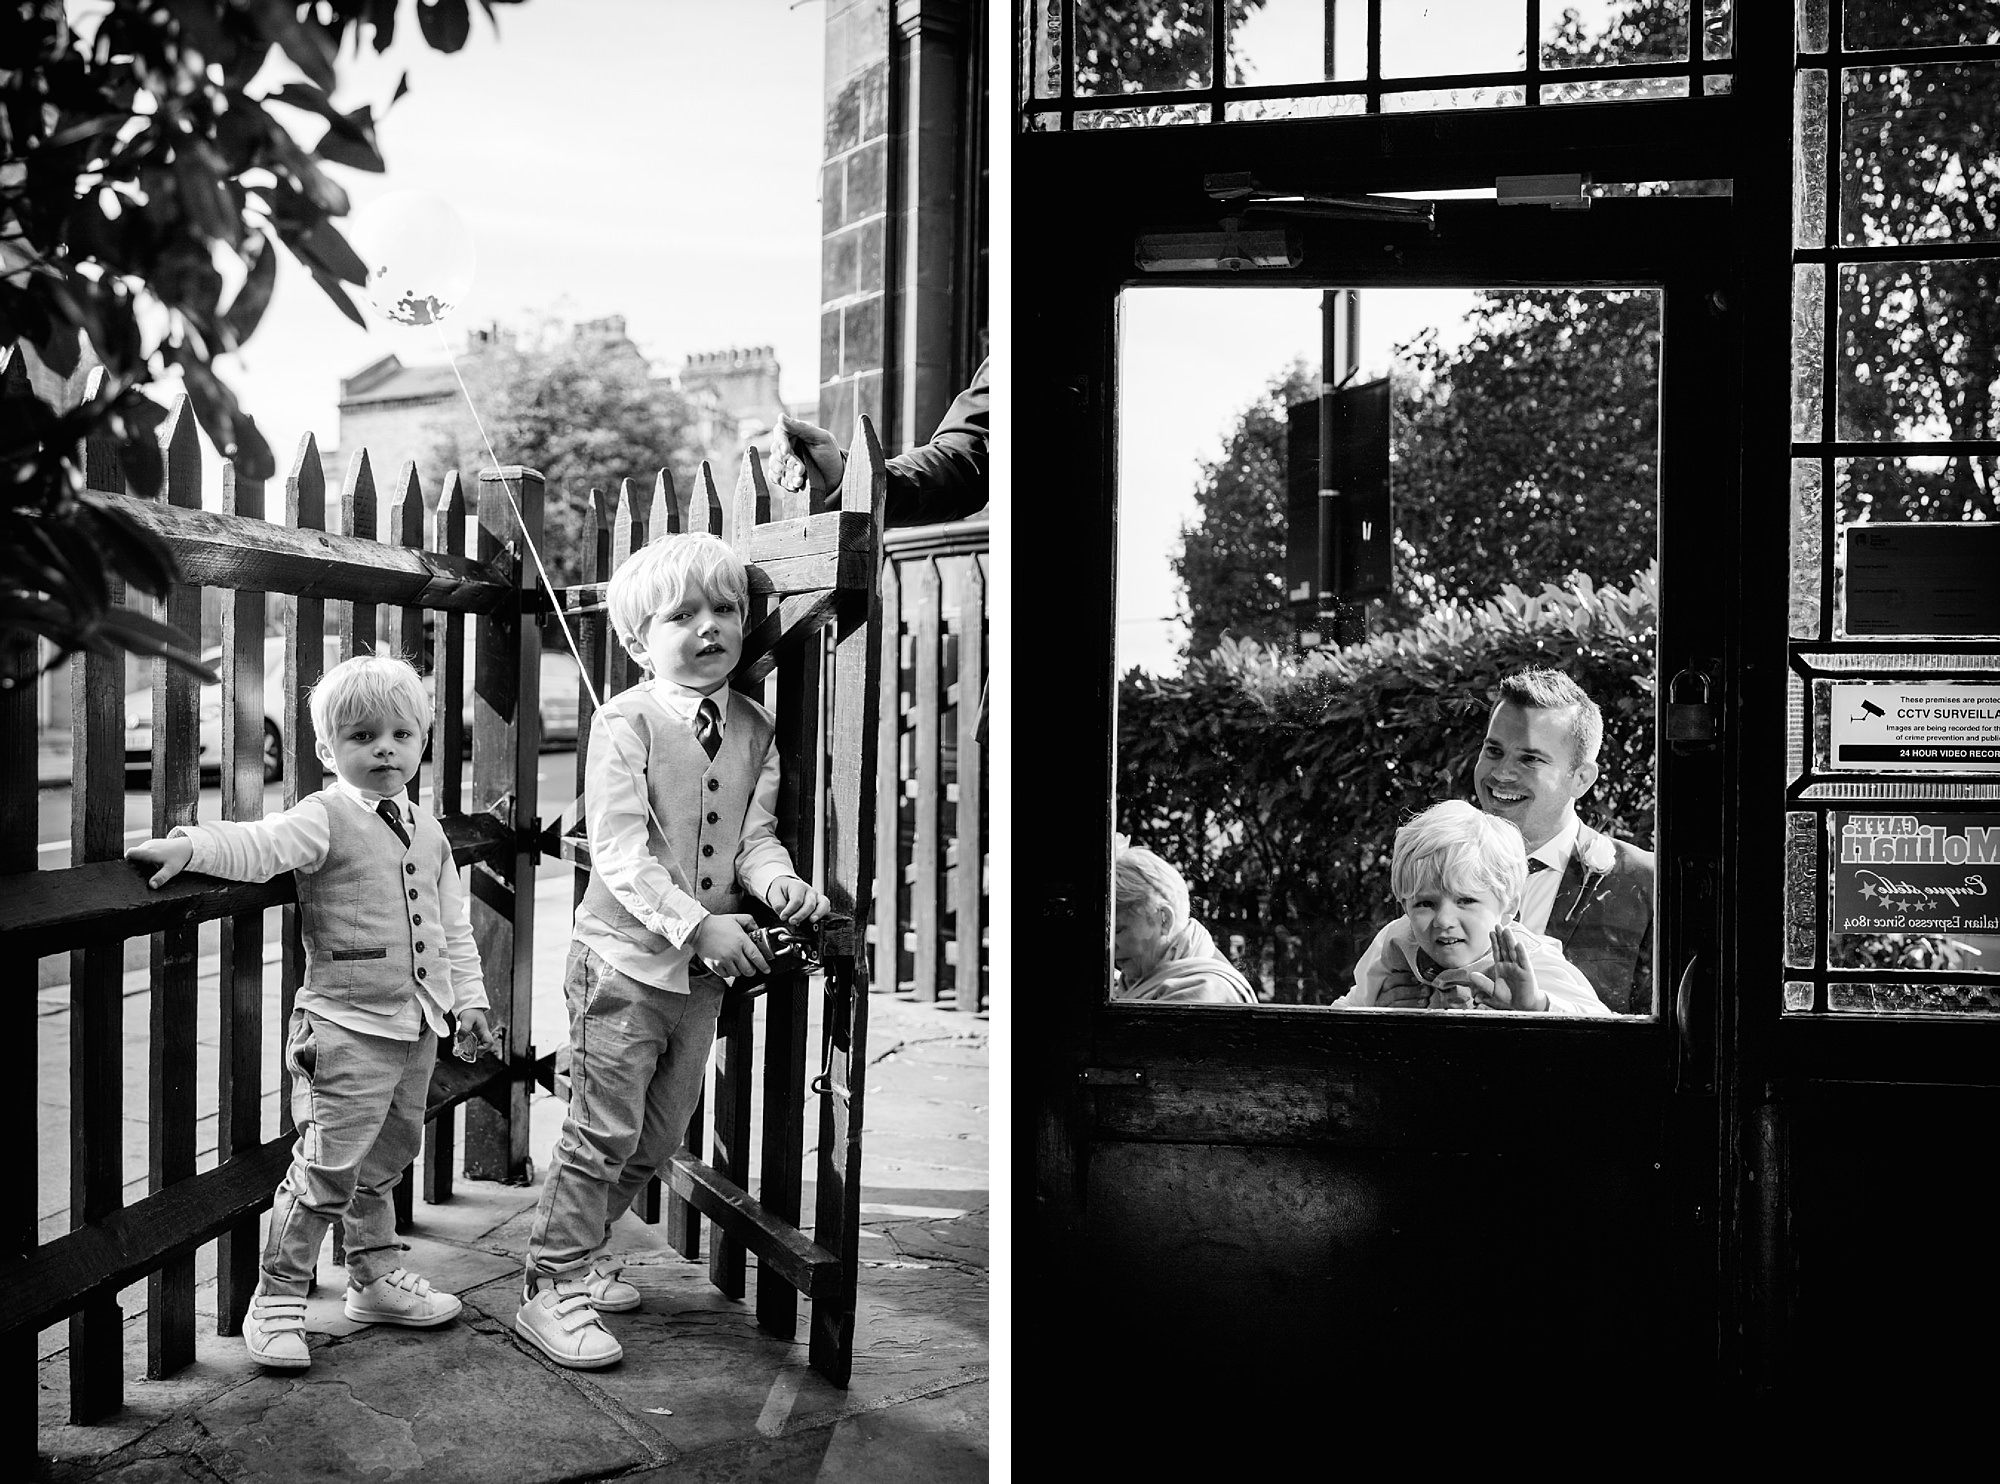 Prince albert camden wedding page boys look through door